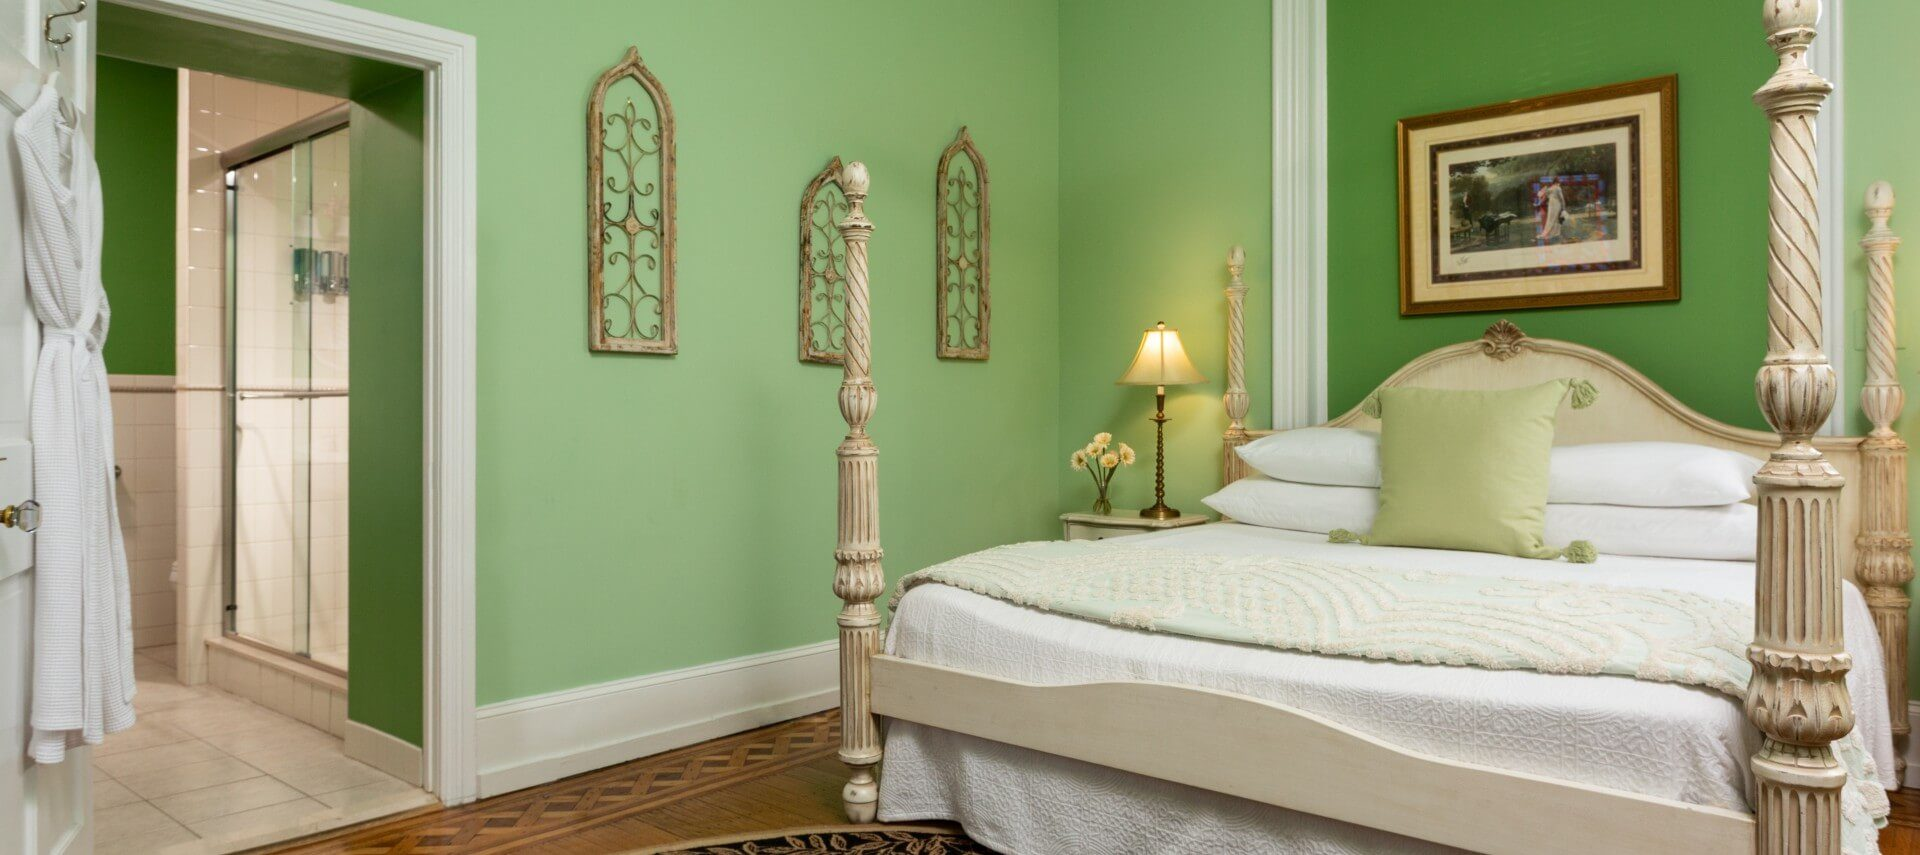 Large bedroom with four poster bed, green walls and doorway into bathroom with hanging robes